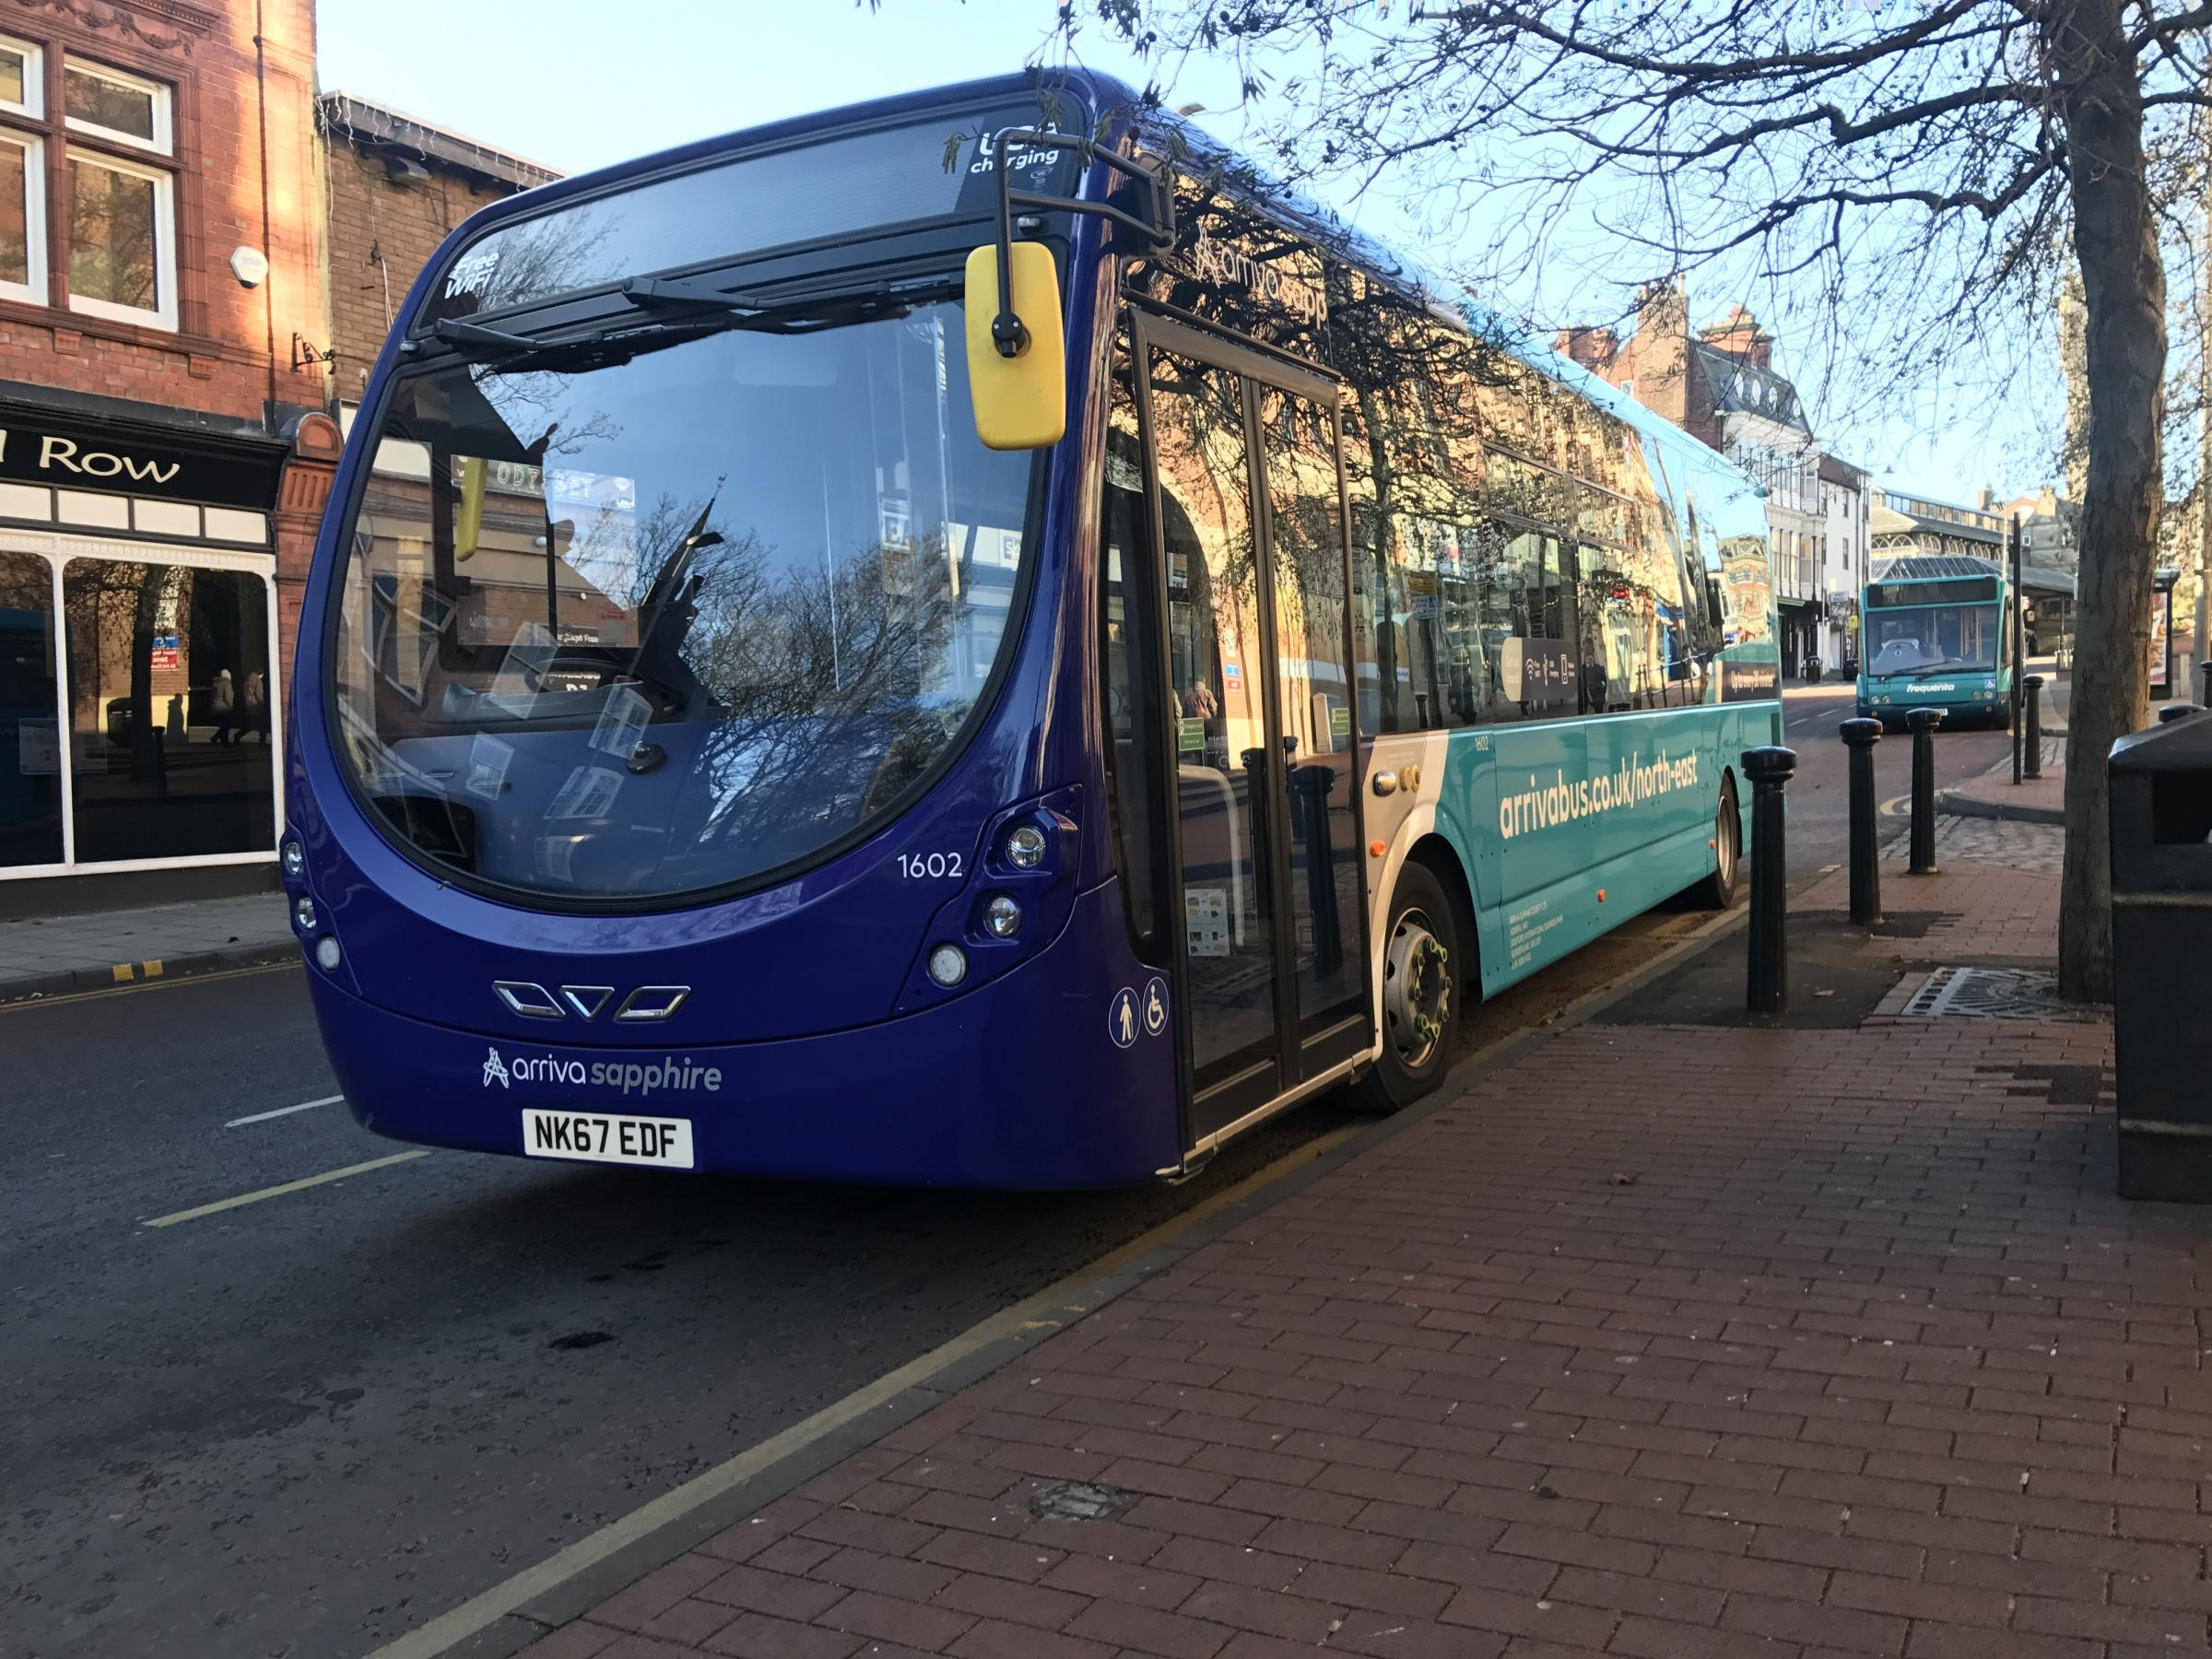 A new ten day strike by Arriva bus drivers has been announced in a dispute over pay